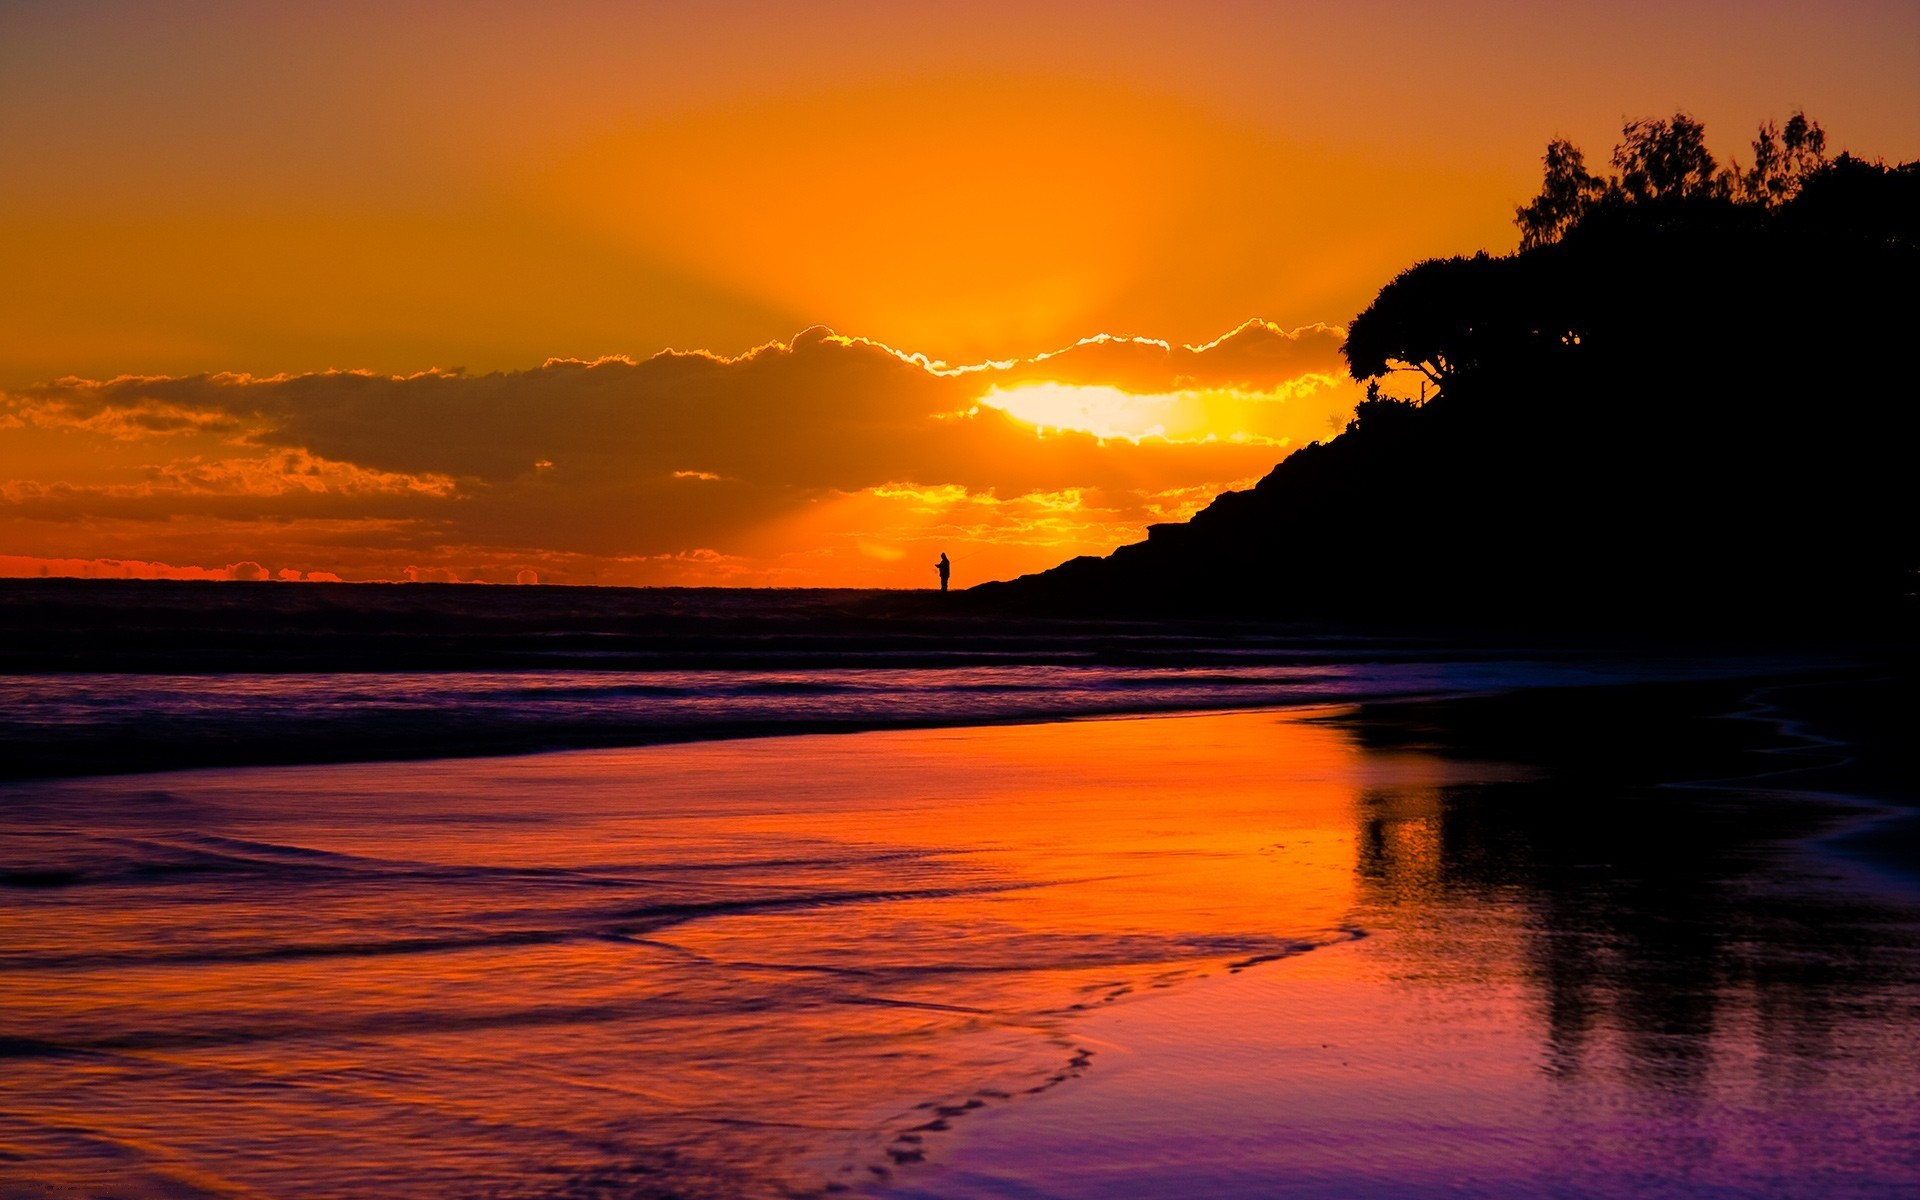 Sunset Beach Wallpaper 1920x1200 Sunset, Beach, Sea, Silhouette